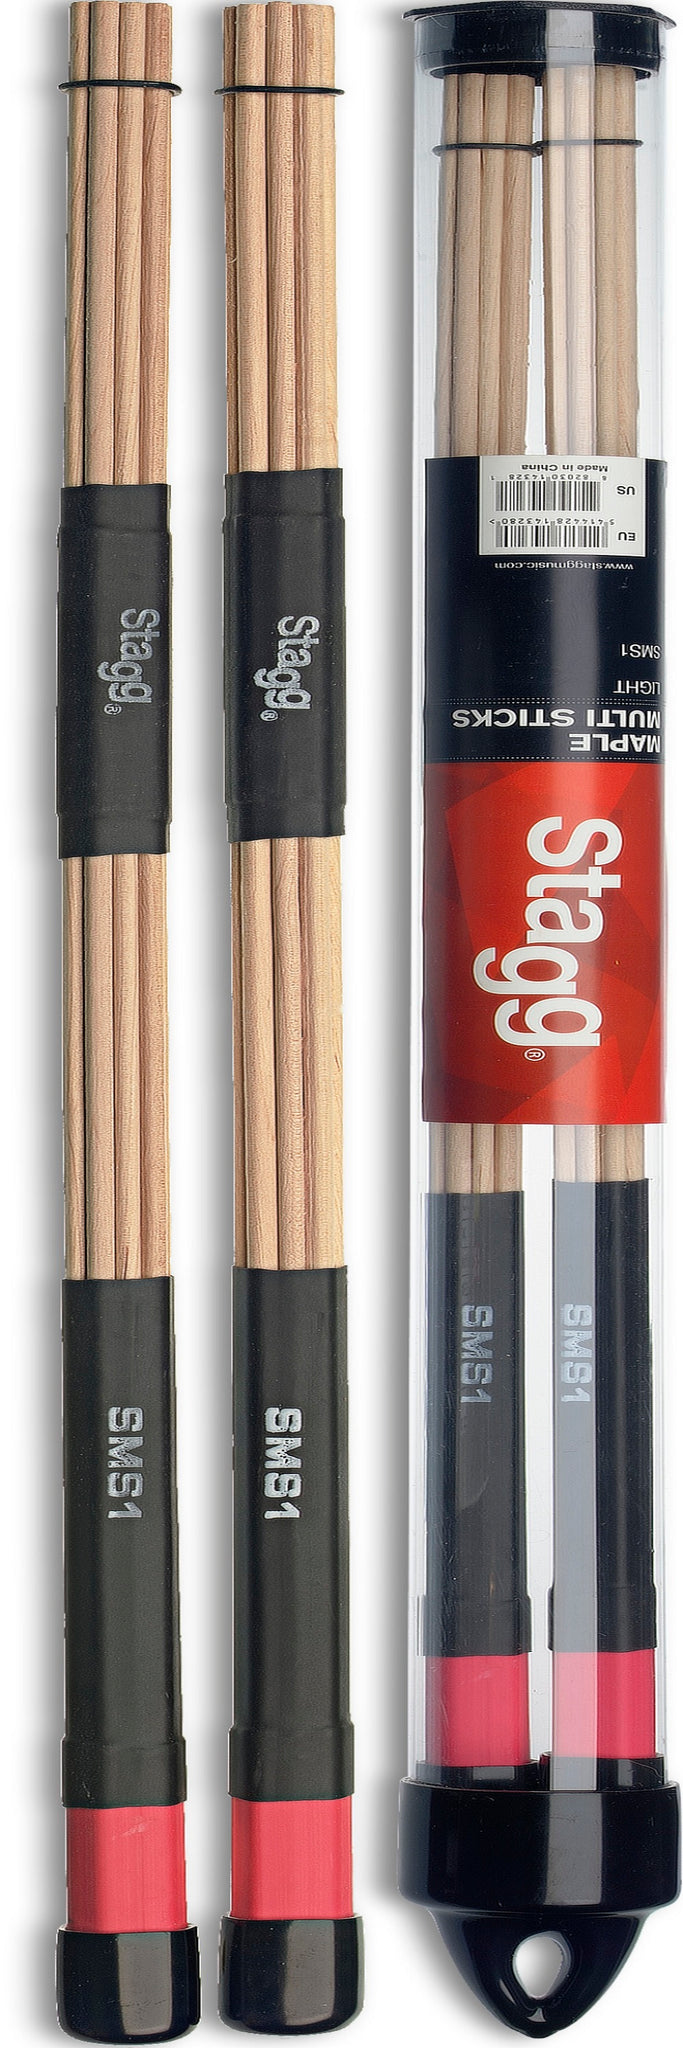 Stagg maple multi-sticks SMS1